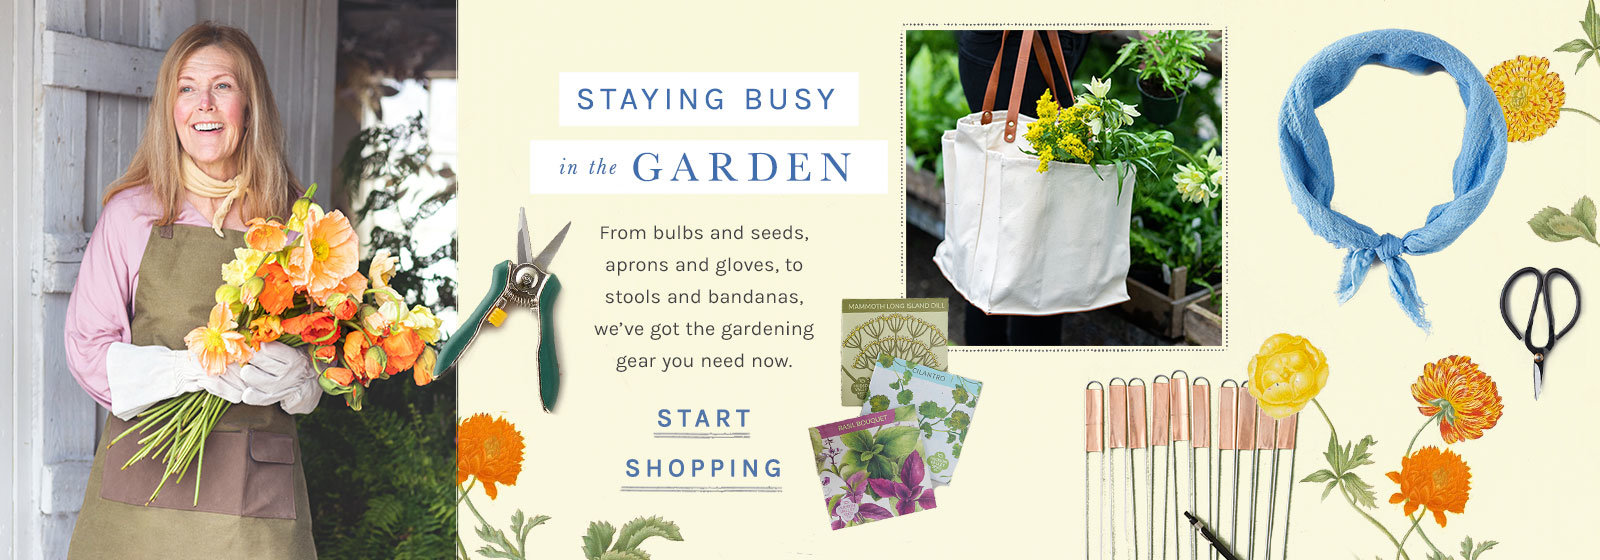 Staying Busy in the Garden | From bulbs to seed, aprons to gloves, we've got the gardening gear you need now.